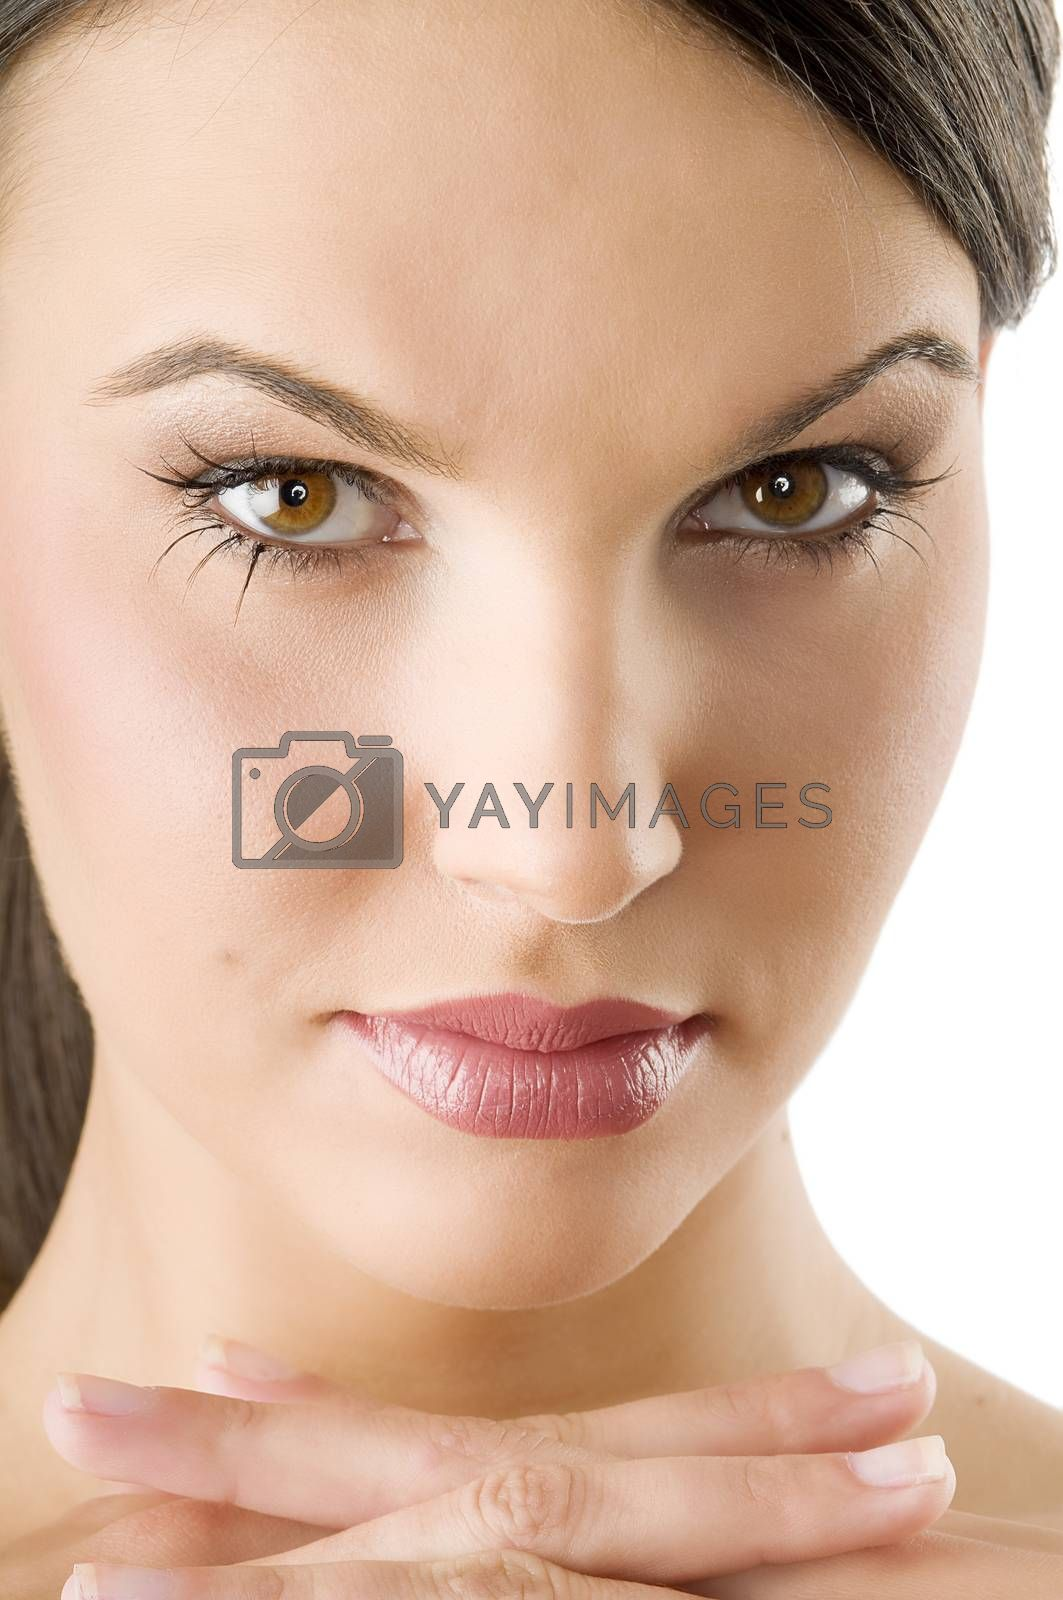 Royalty free image of my eyes by fotoCD